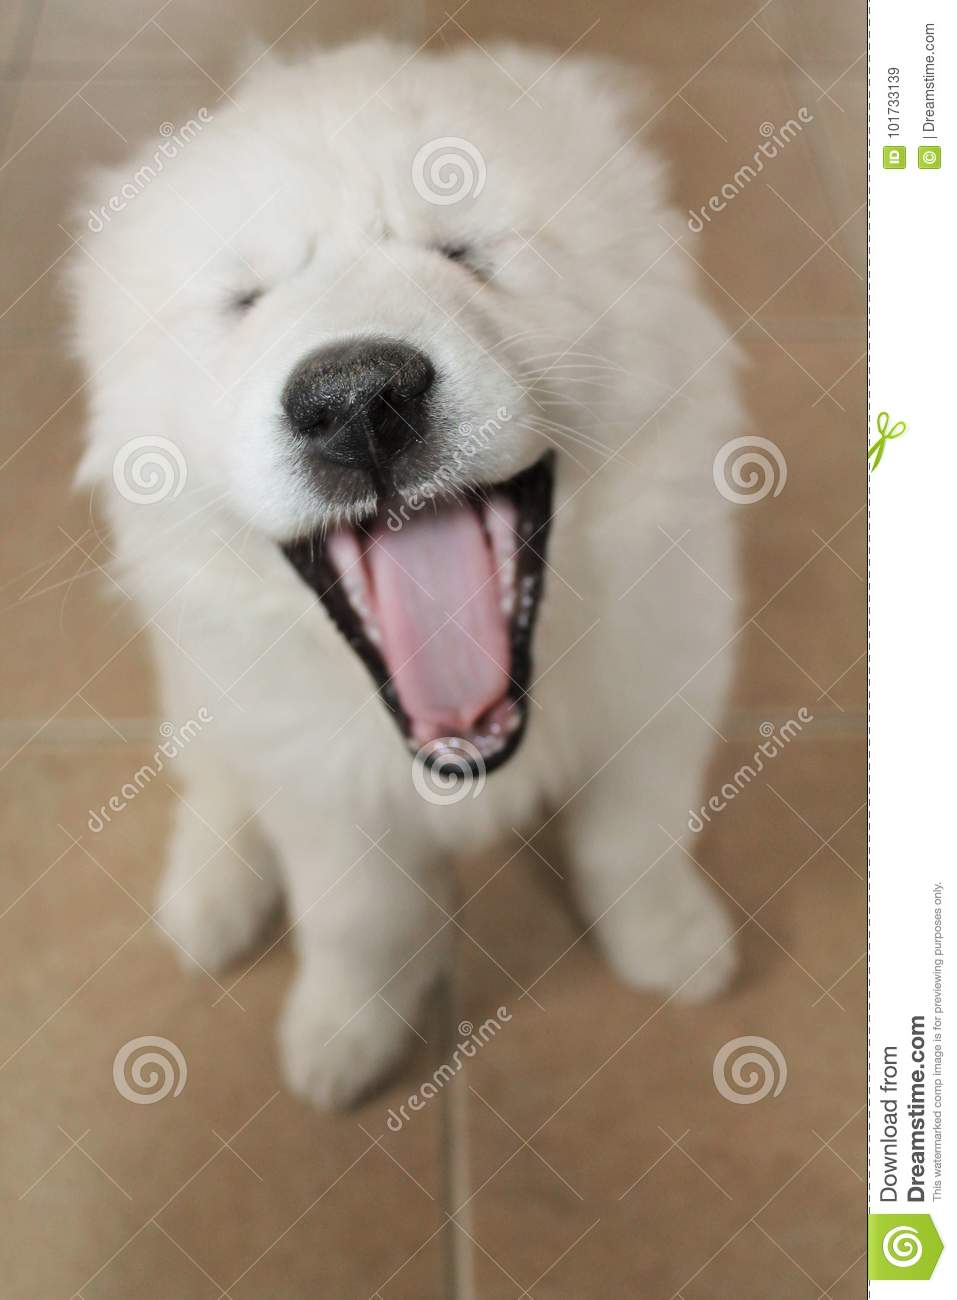 Funny Adorable Puppies Yawning